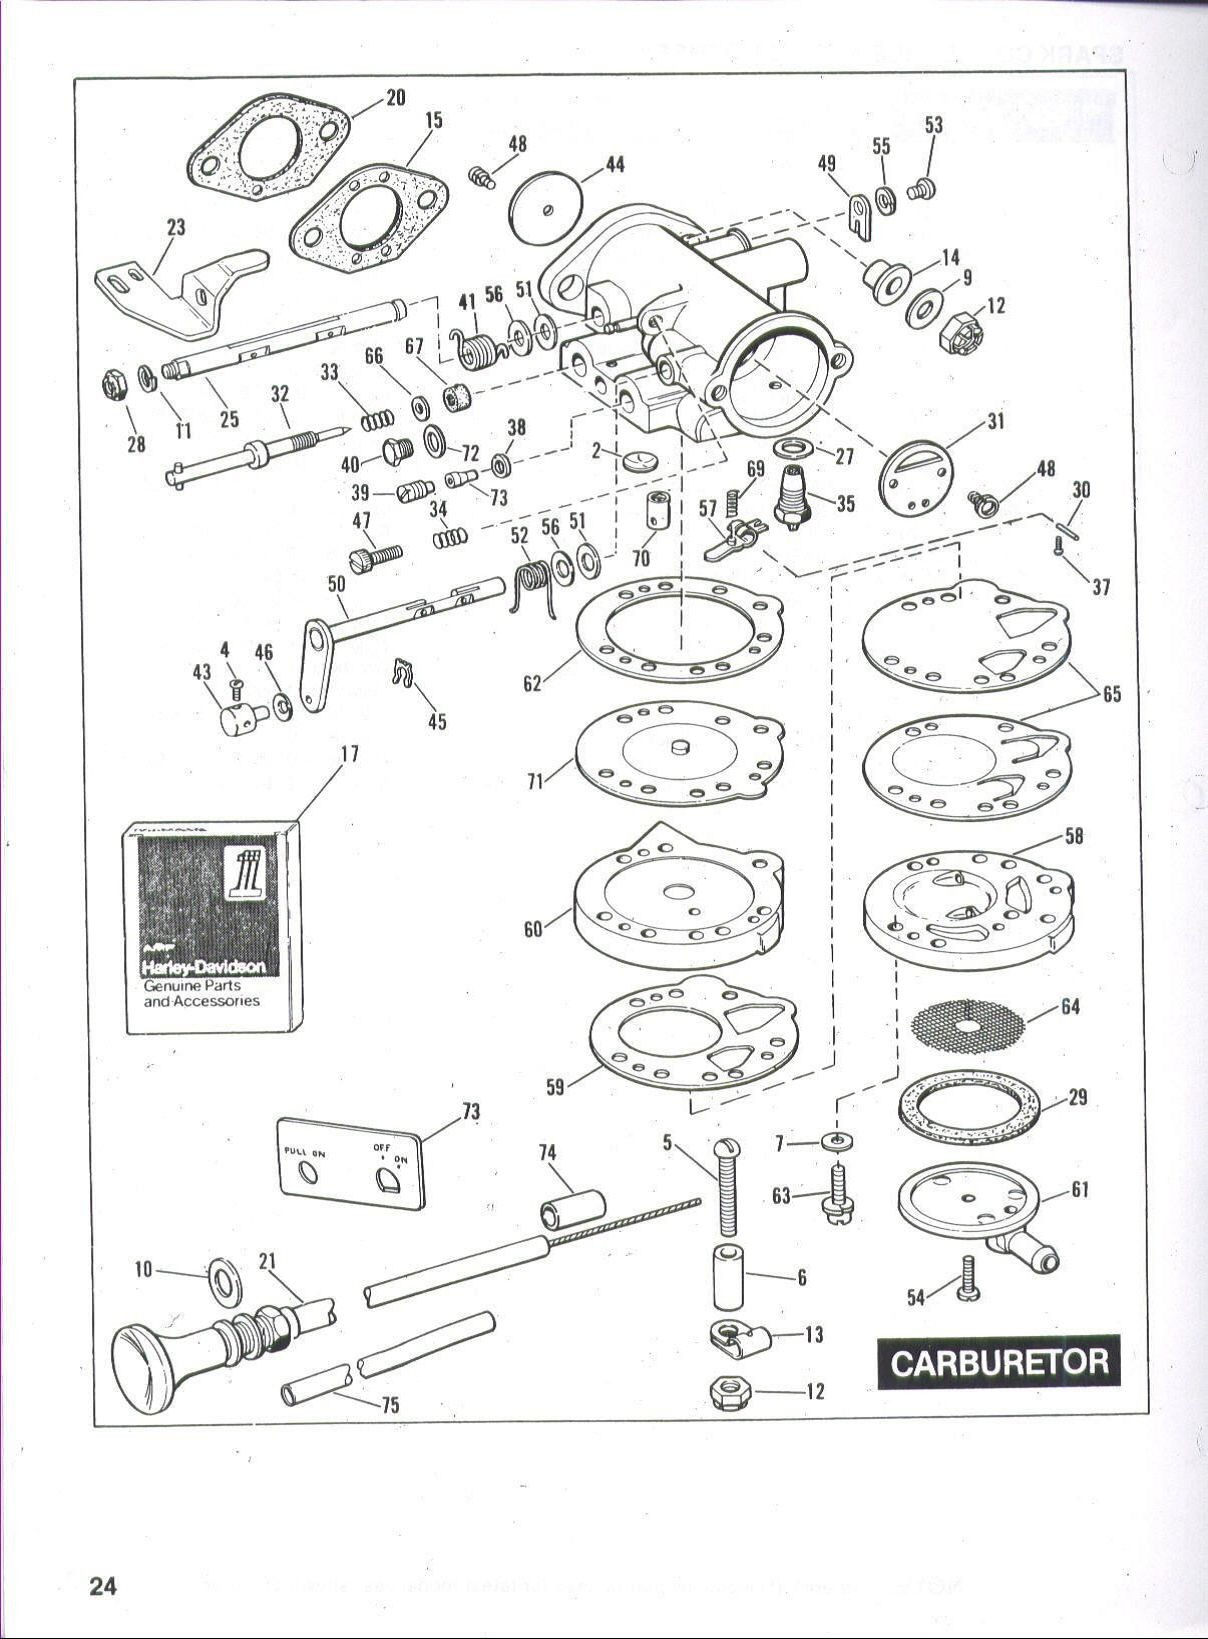 hight resolution of harley engine diagram harley davidson golf cart carburetor diagram utv stuff of harley engine diagram also